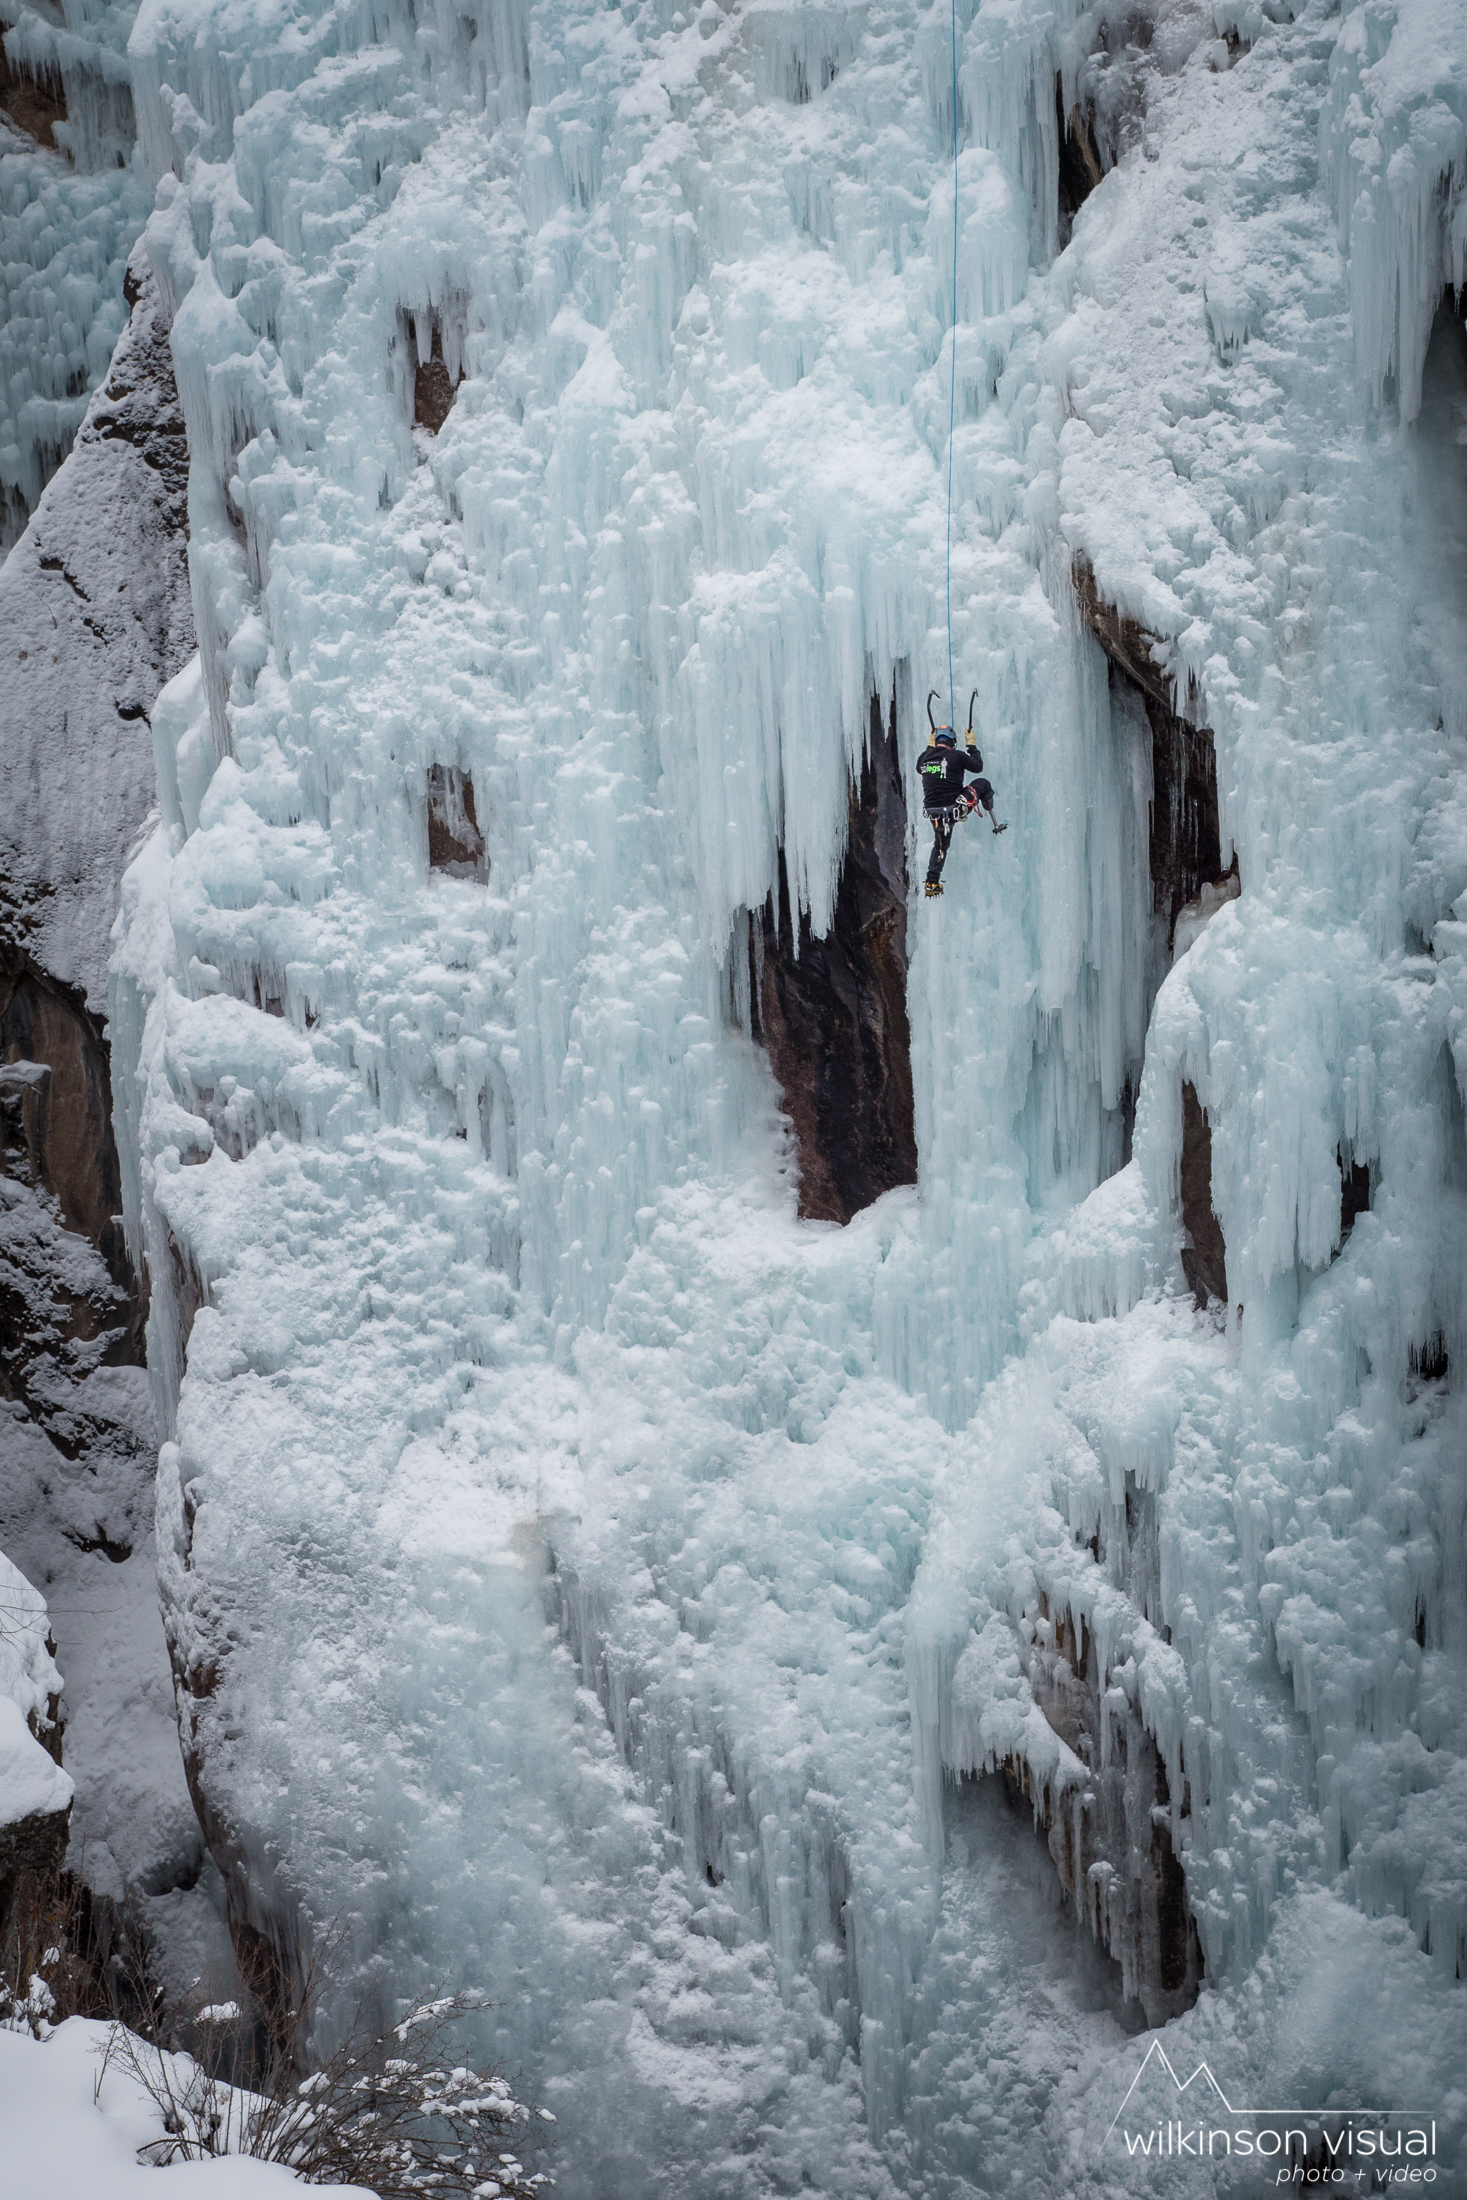 Amputee climber Jeff Bryan top ropes in the Ouray Ice park.